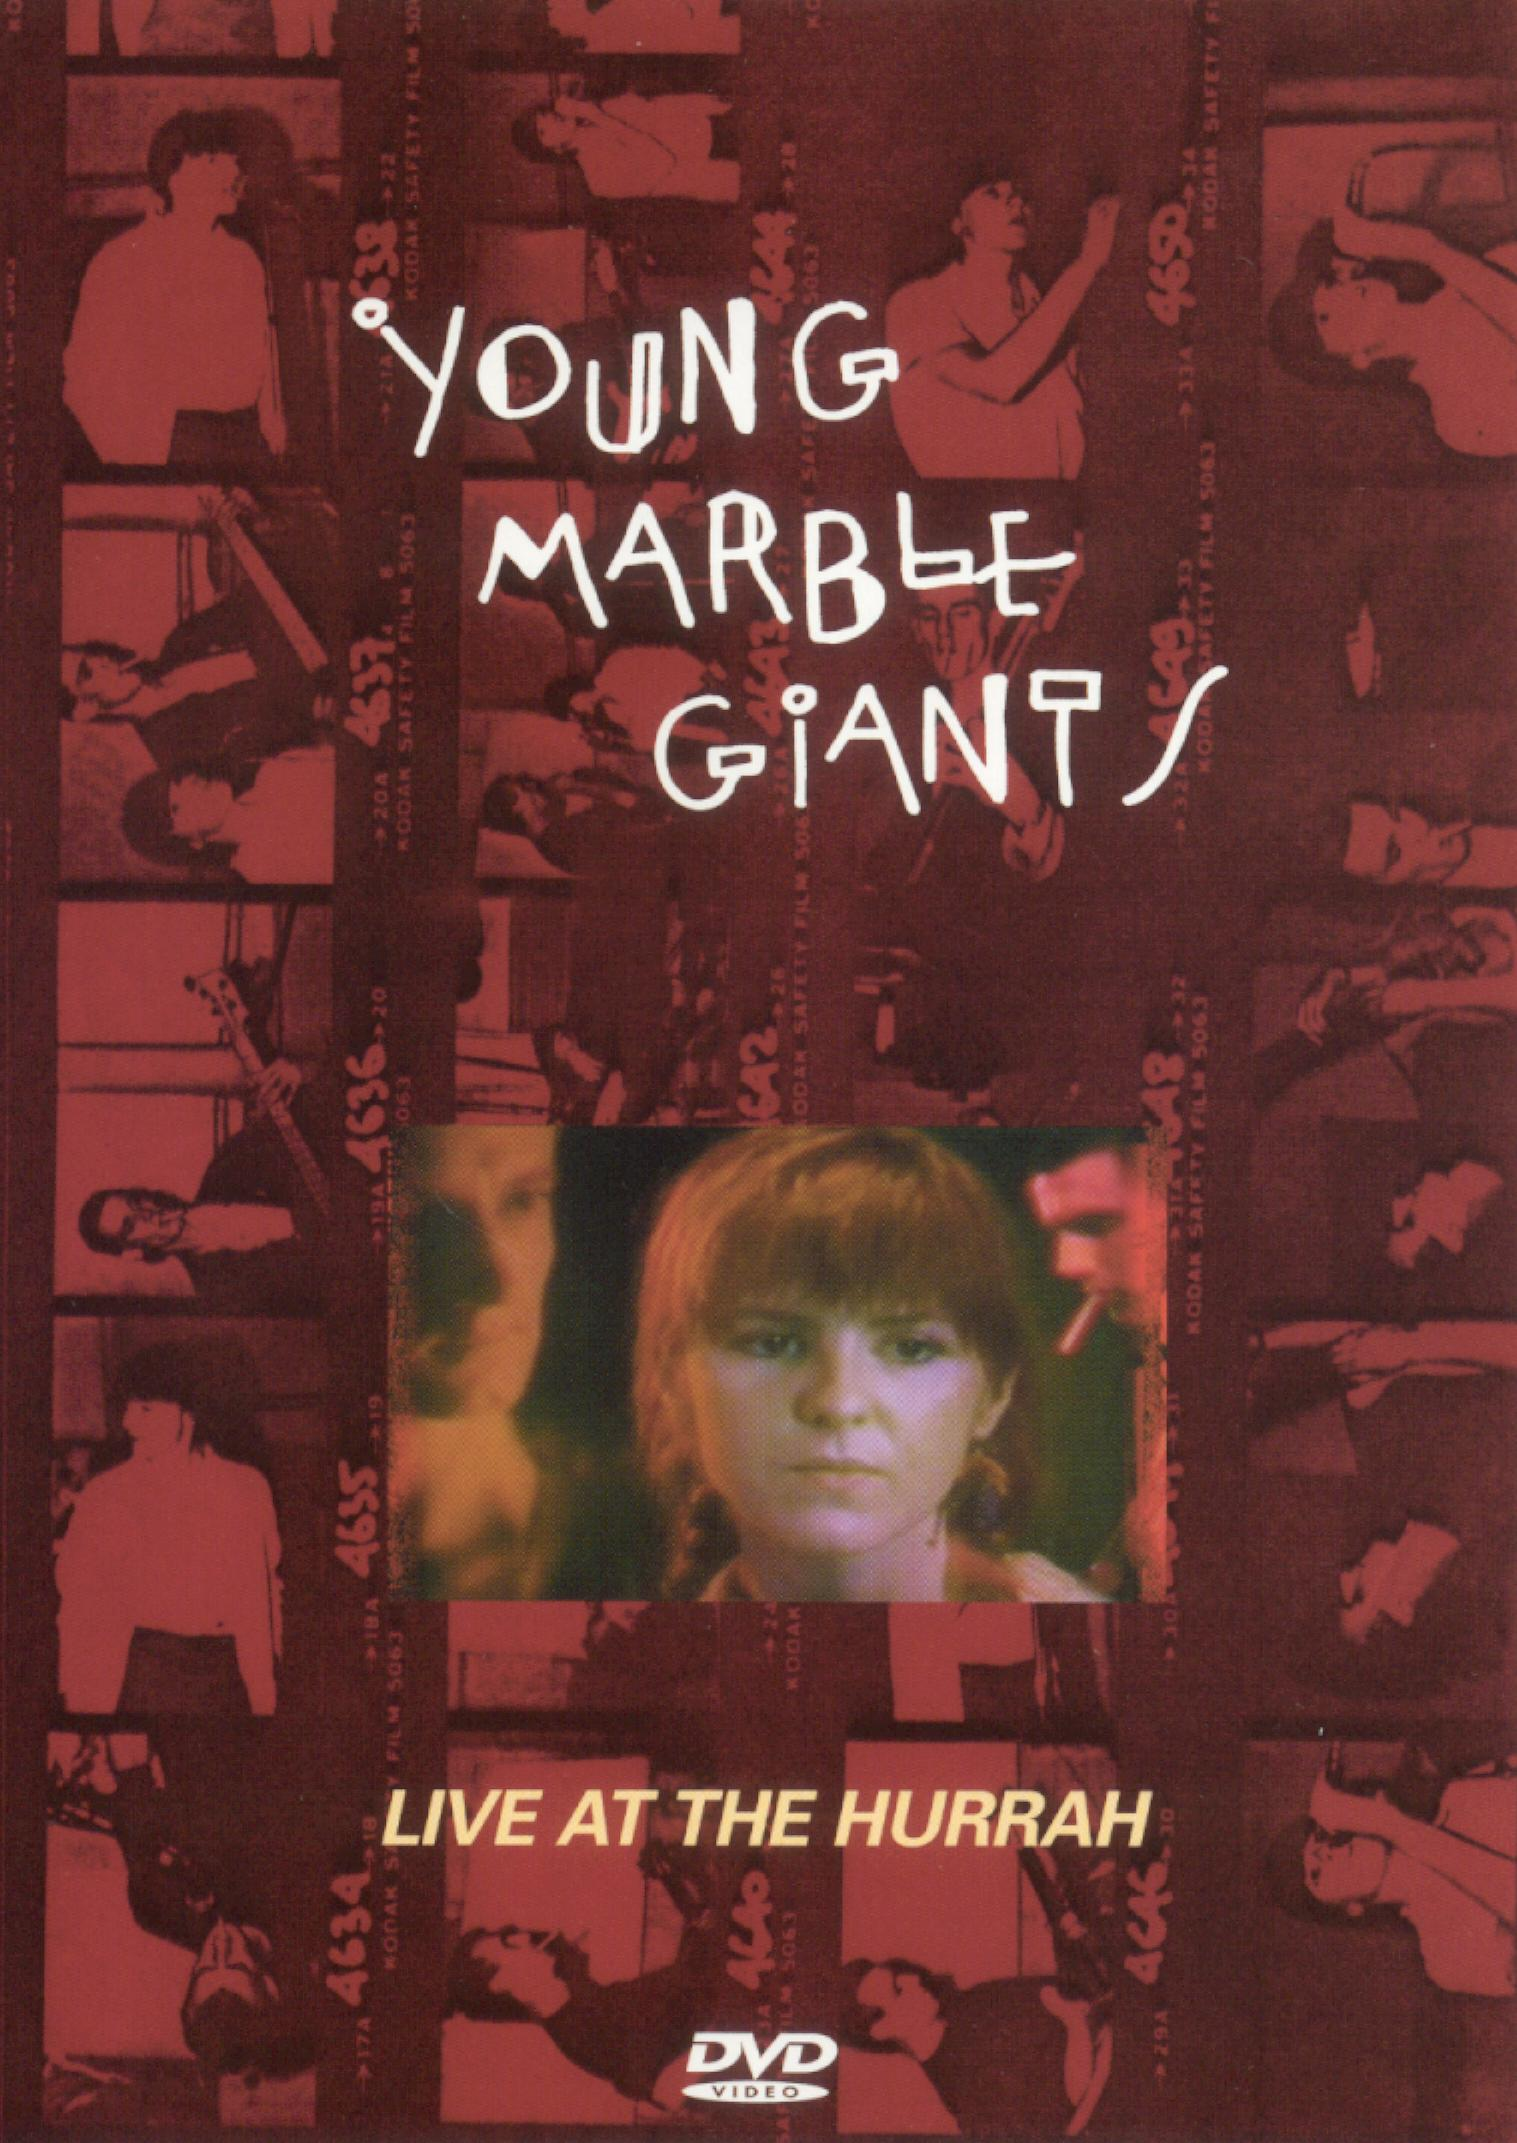 The Young Marble Giants: Live at the Hurrah Club